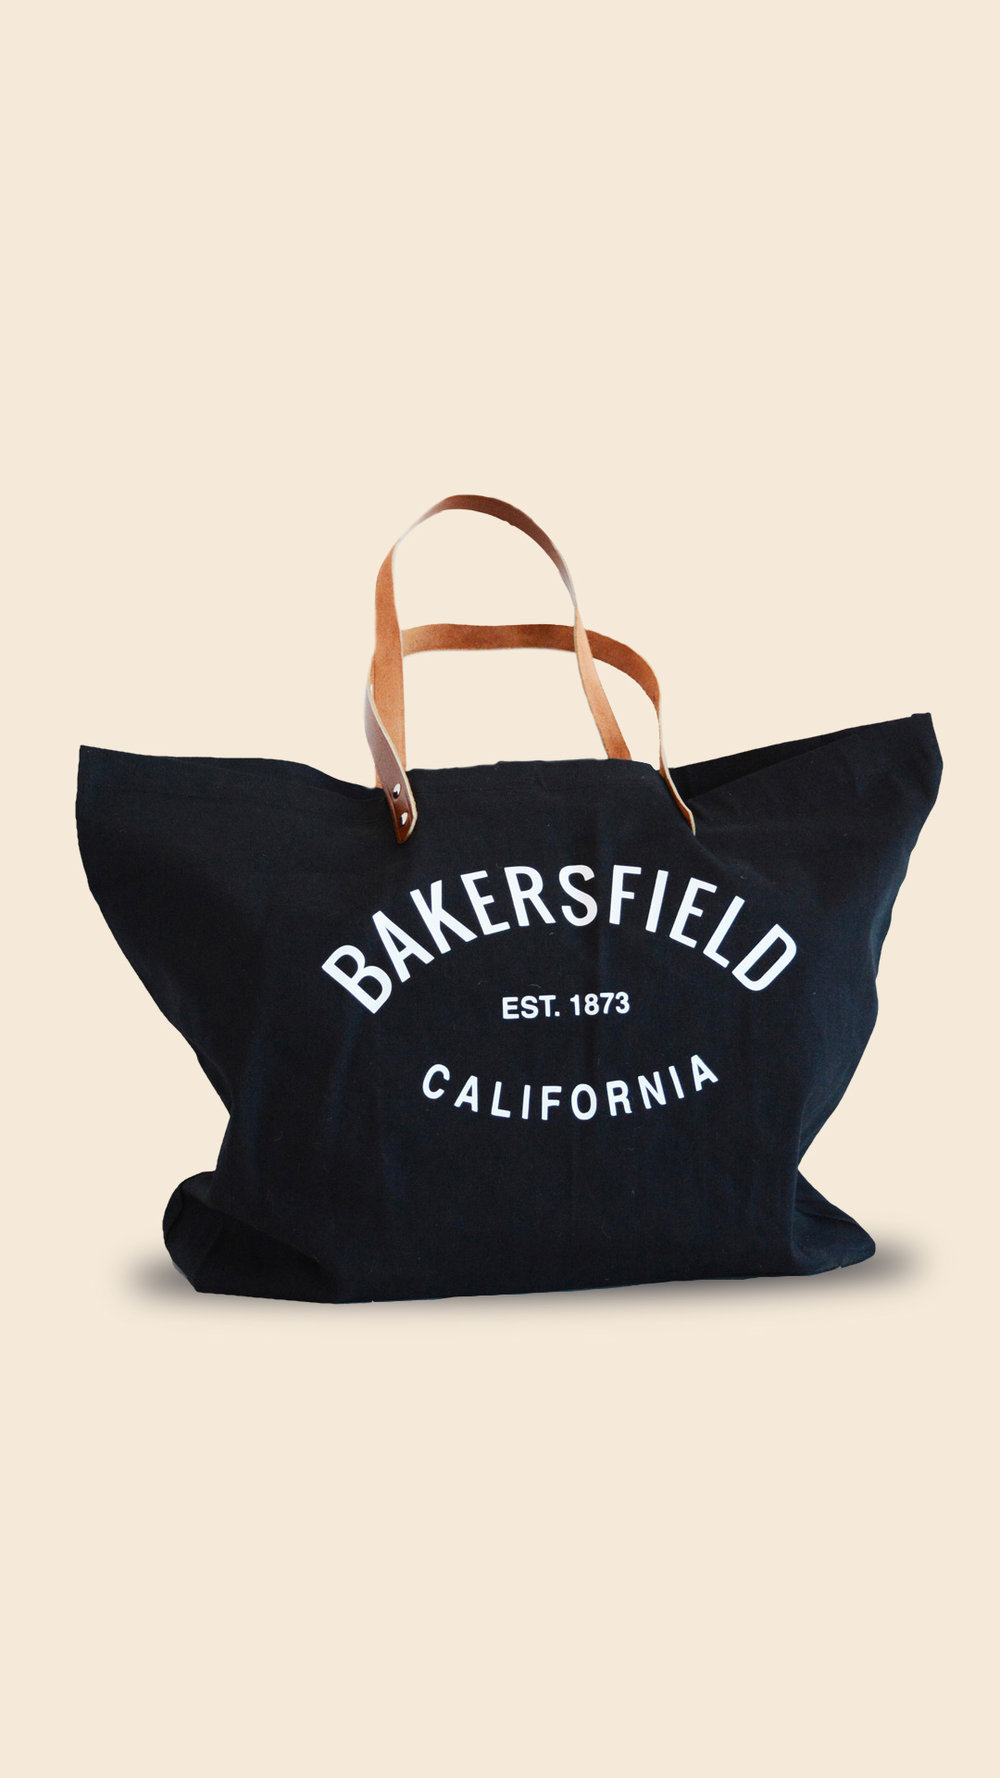 BeInBakersfield_Bag_Stories.jpg